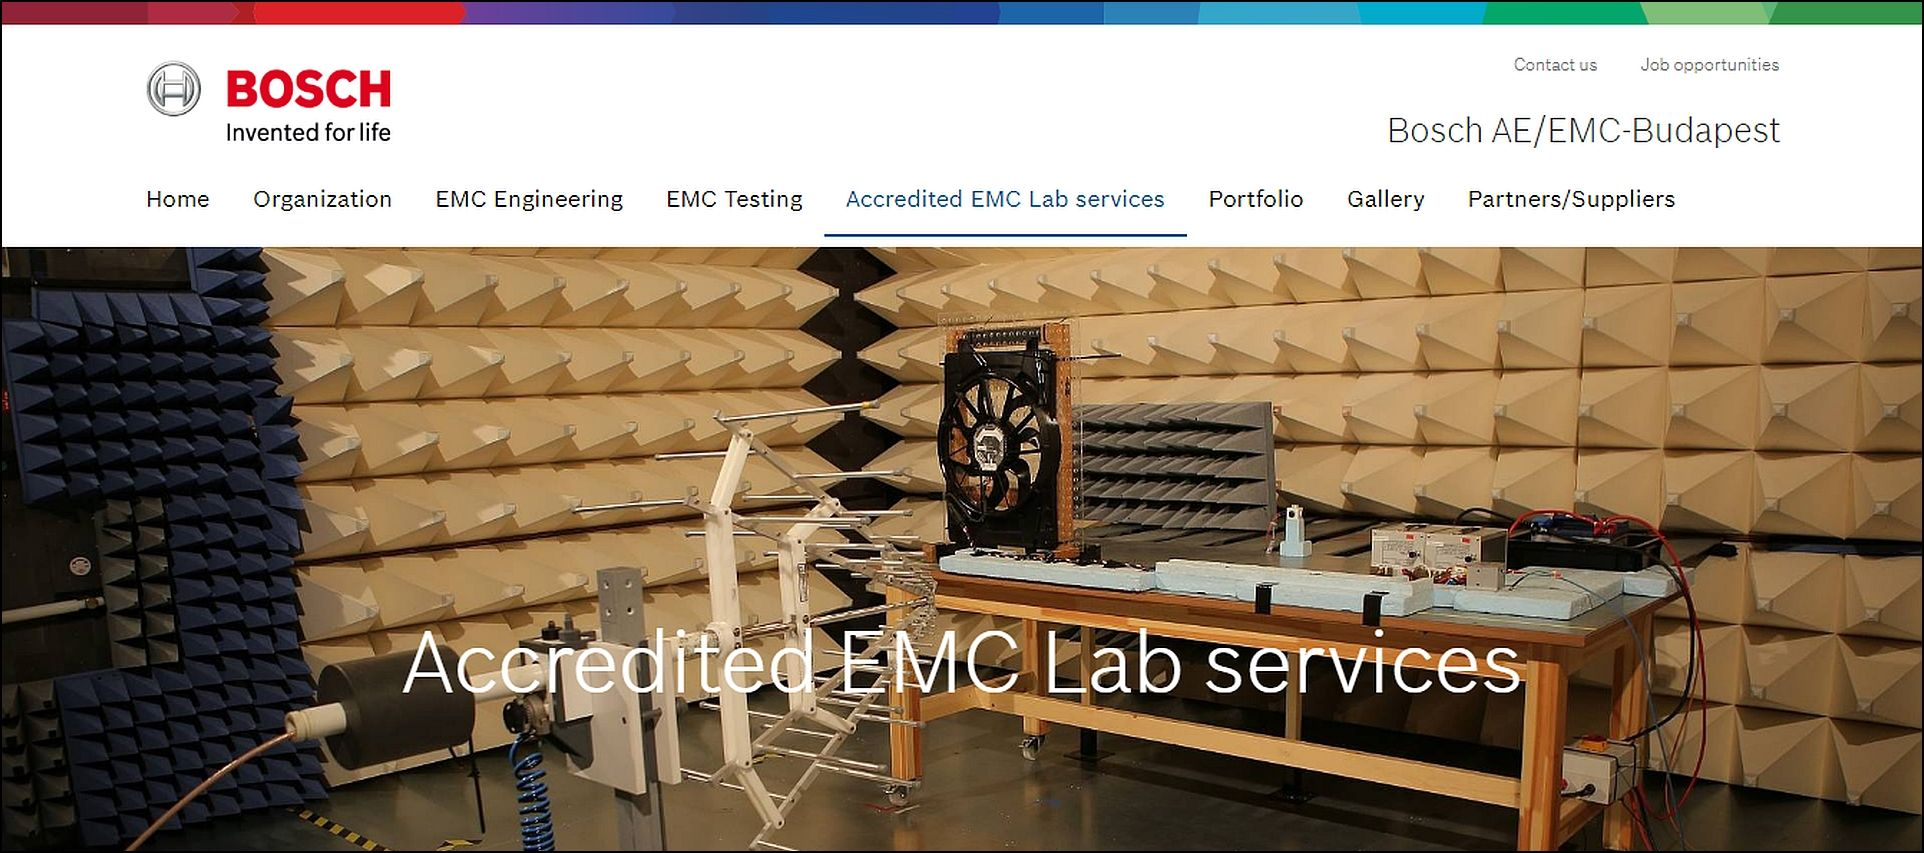 Robert Bosch AE/EMC website